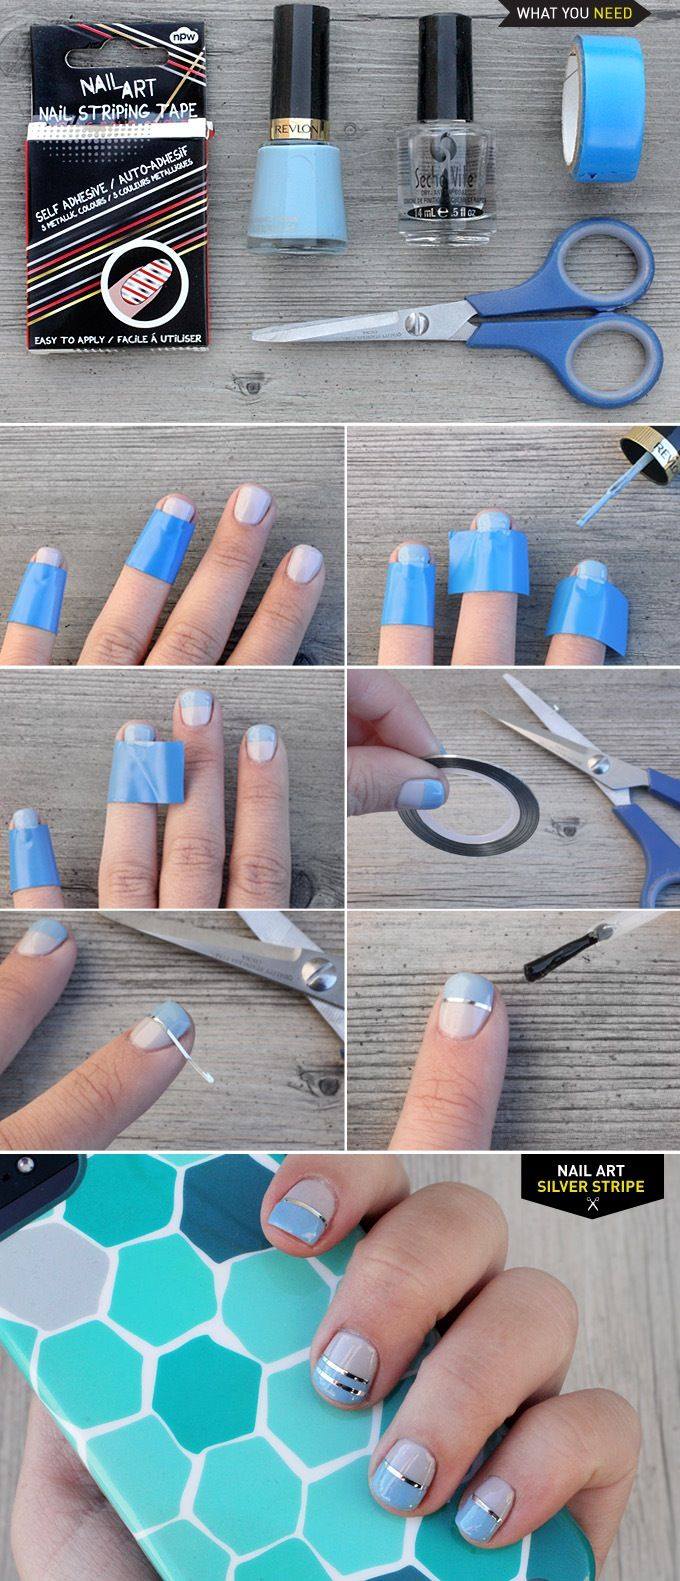 Pattern nail art designs fancy nail art for prom simple nail art lines - Diy Nail Art Silver Stripe I Spy Diy